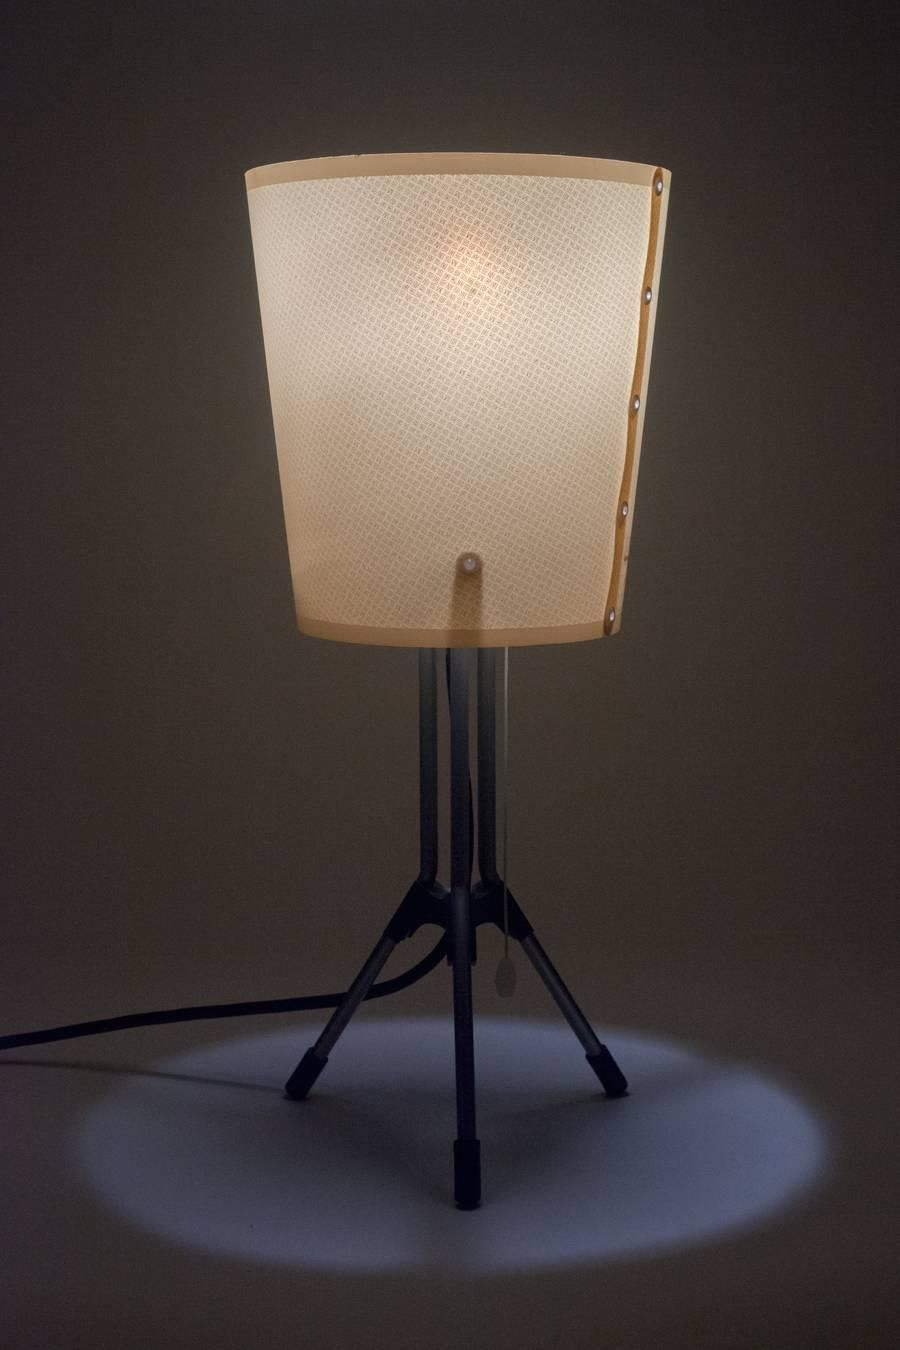 Genial Italian Table Lamp Milo By Rodolfo Dordoni For Artemide, Tripod Base, 1990s  | From